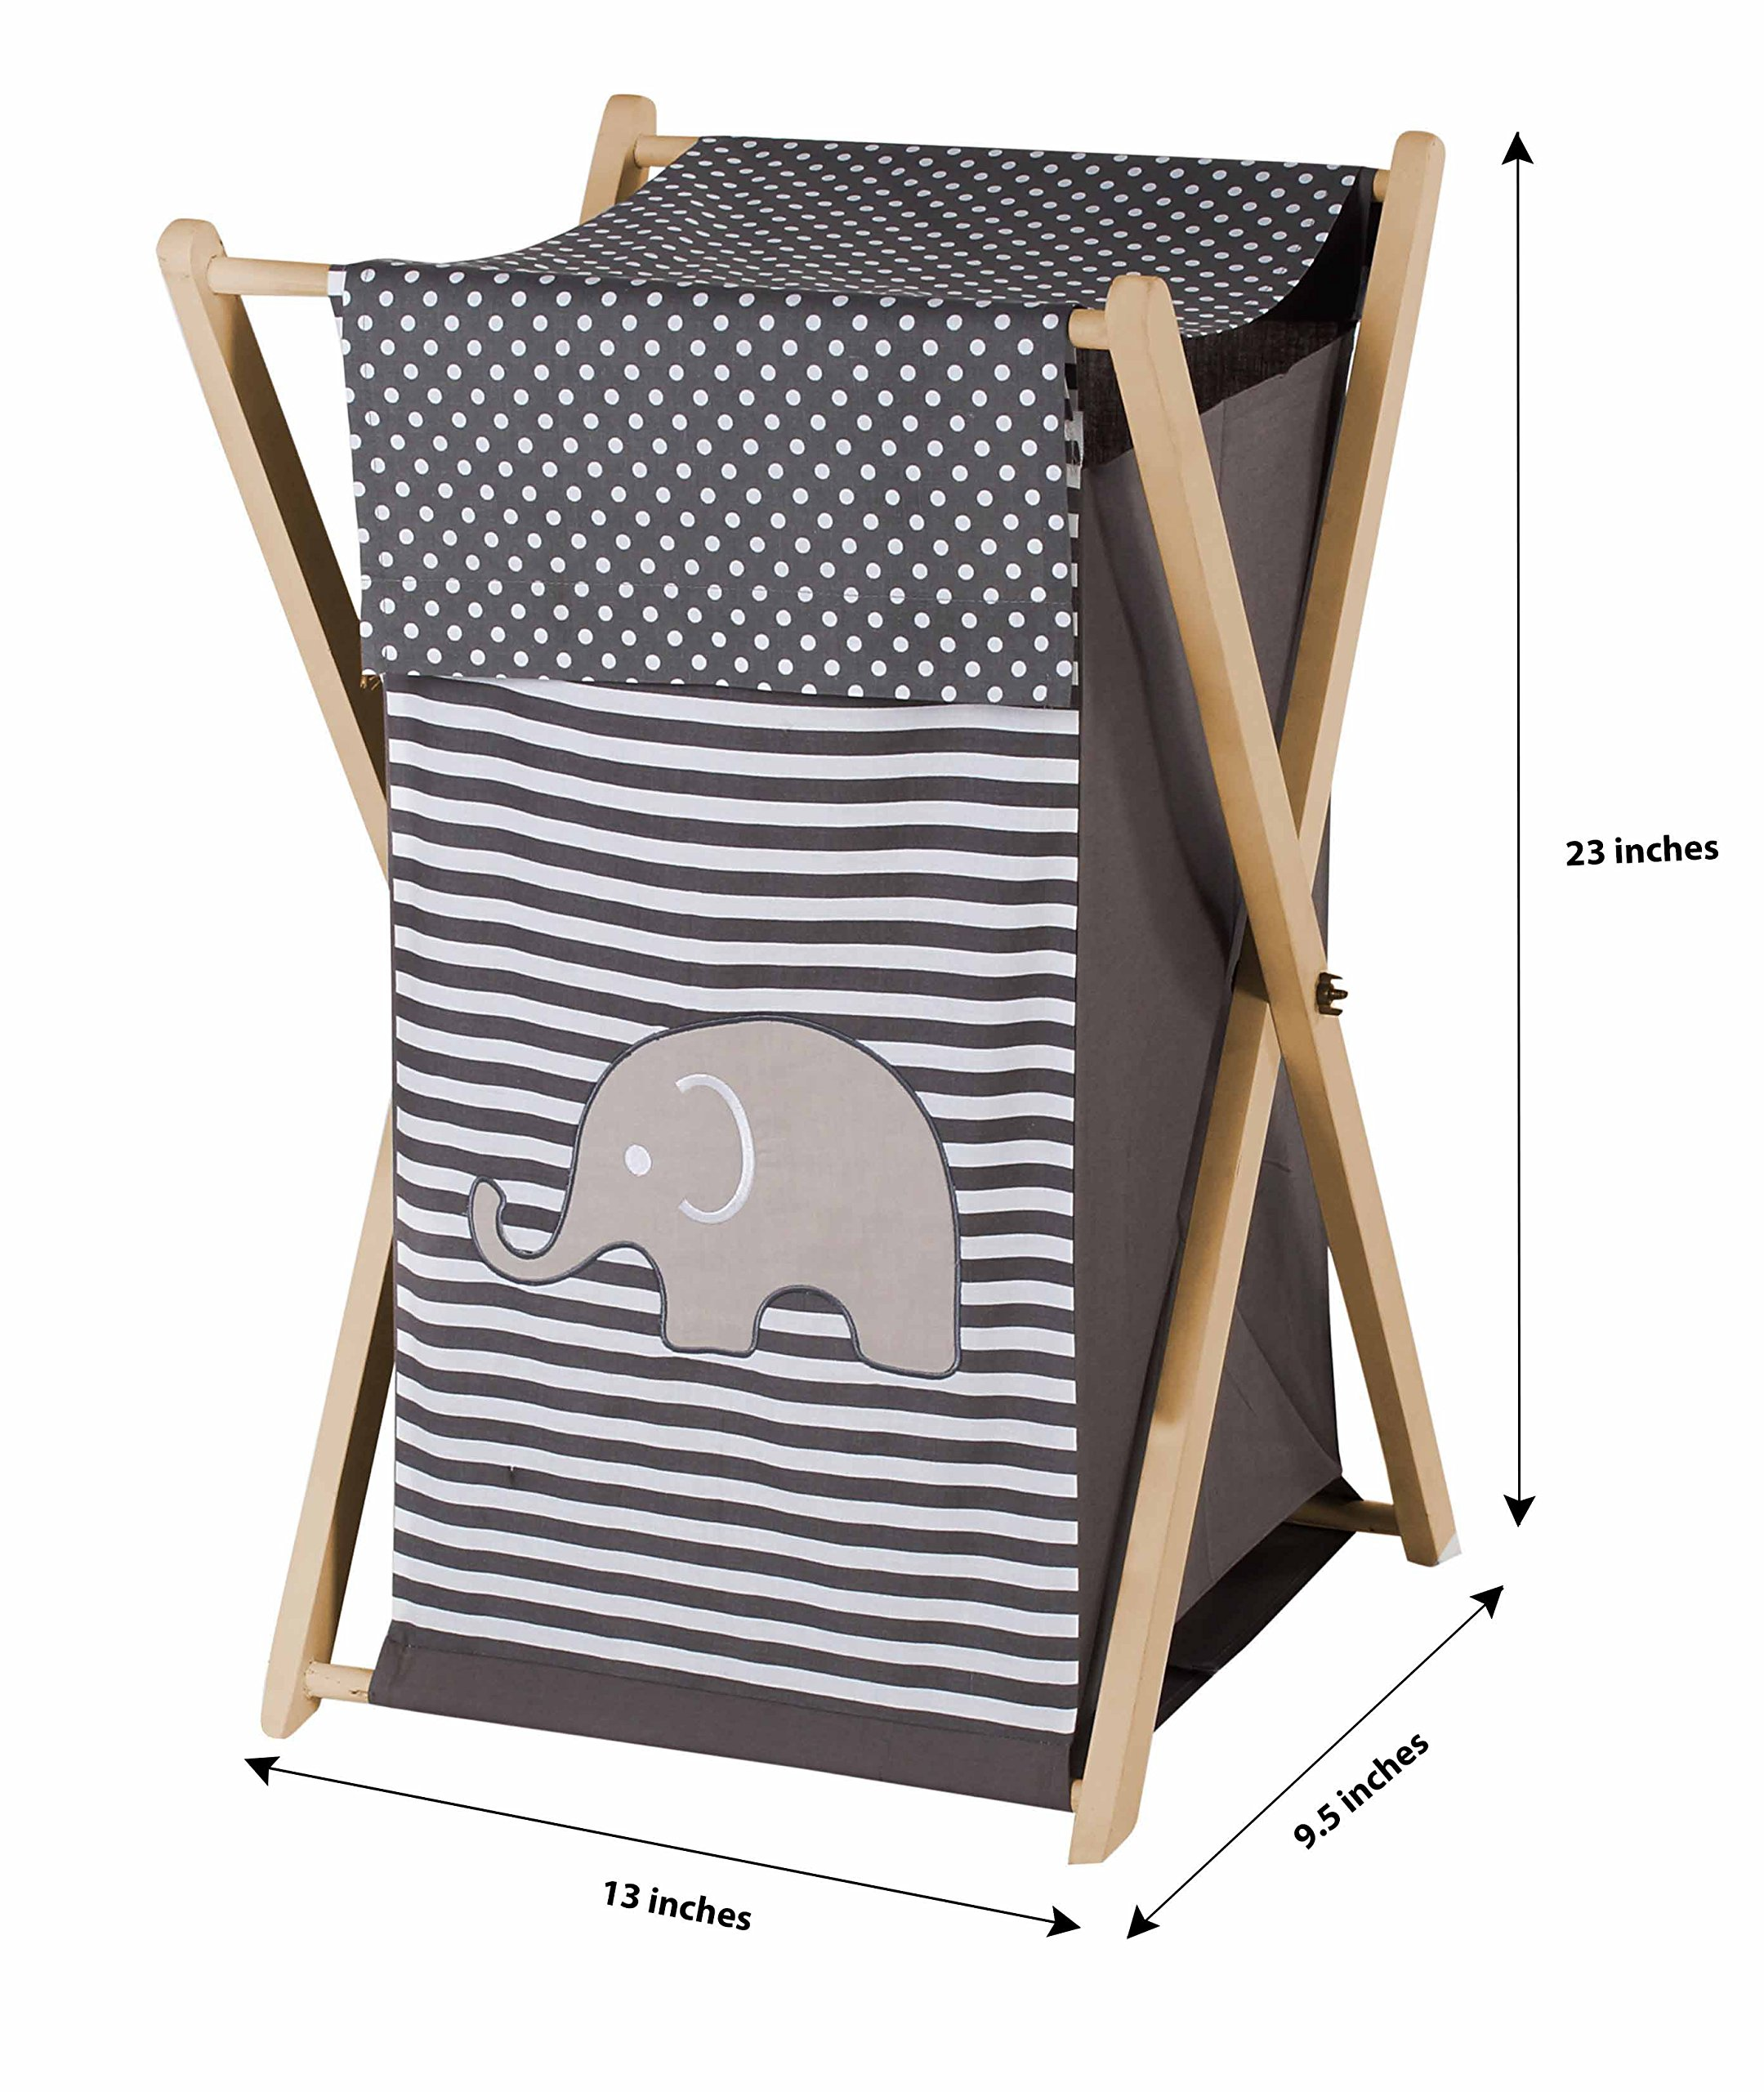 Bacati Elephants Unisex Hamper Cover with Natural Finish Wood Frame and Mesh Liner, Grey by Bacati (Image #1)